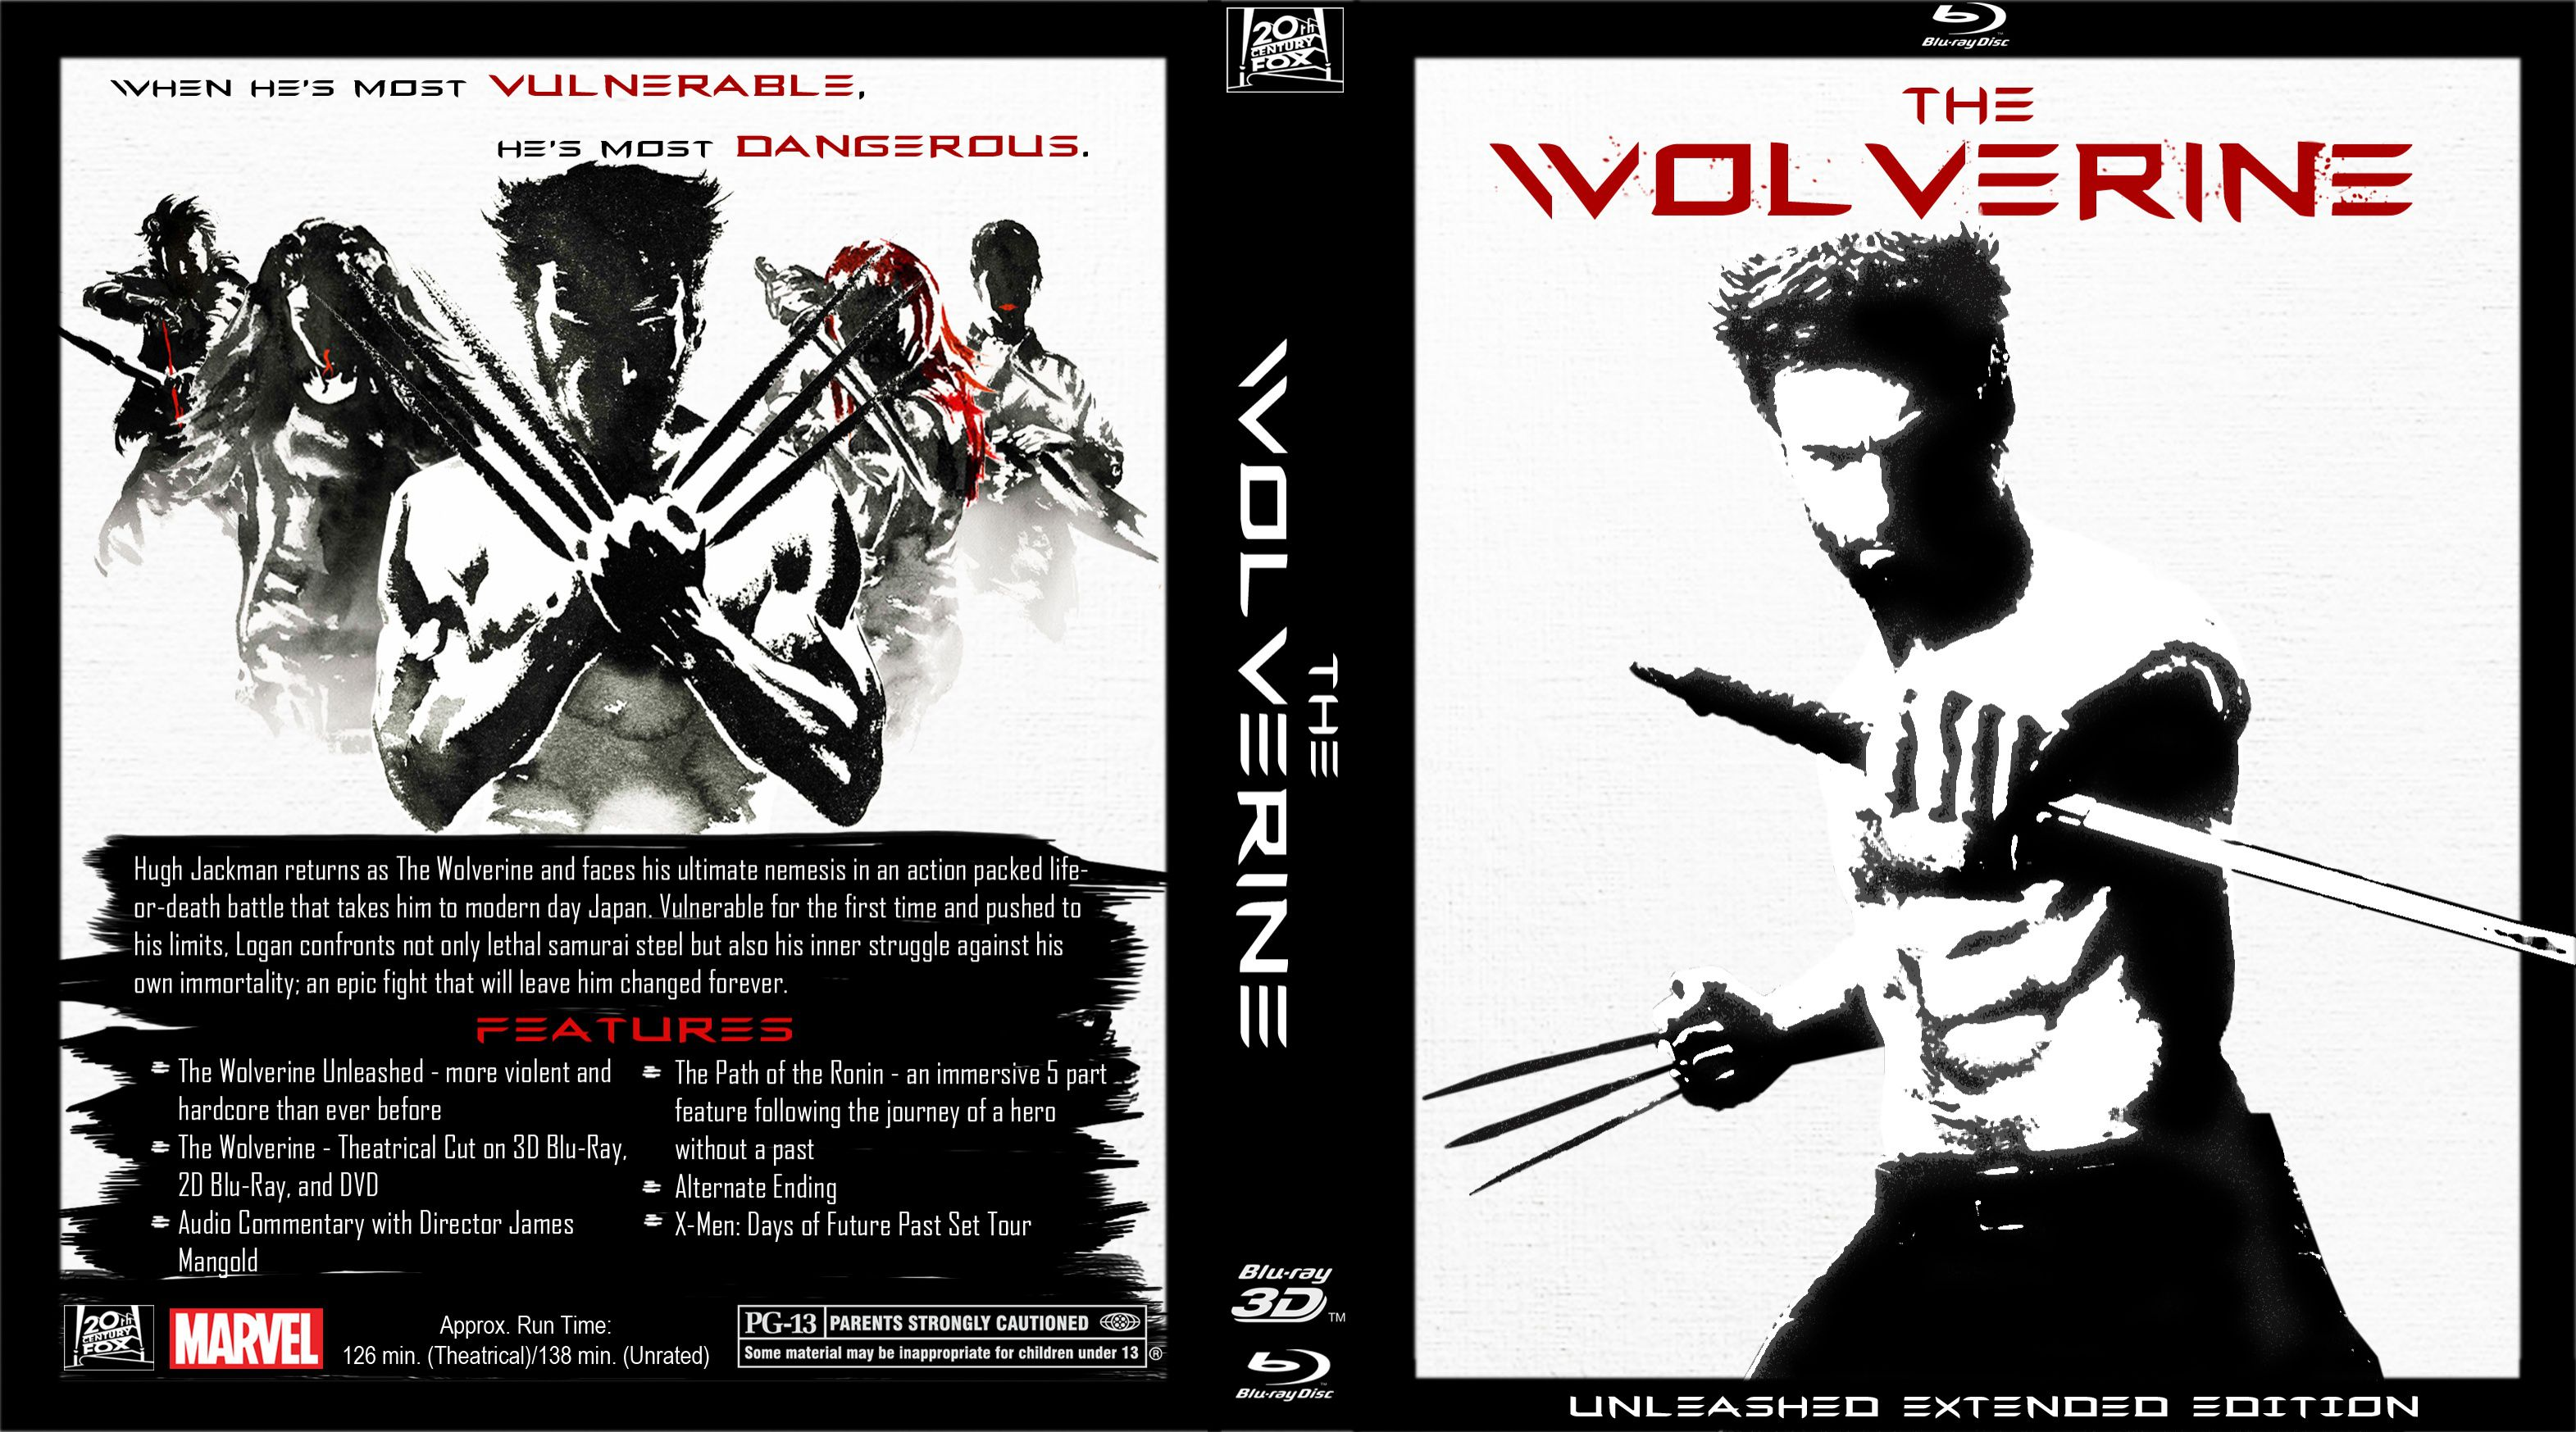 Capa Bluray The Wolverine